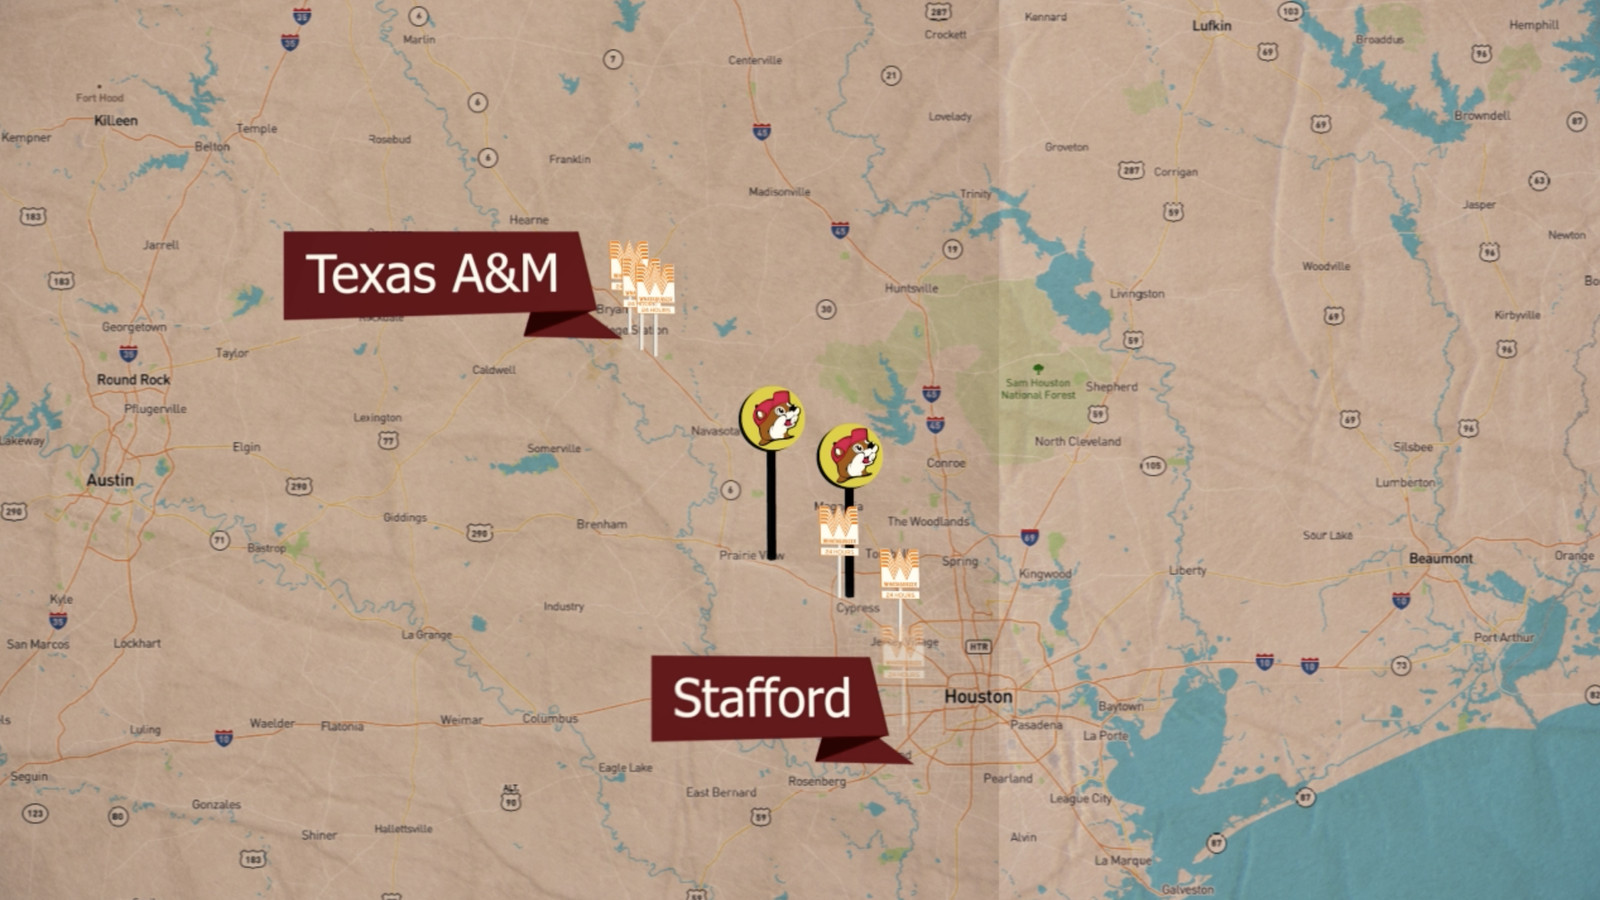 bucees locations map with Video Texas Am Aggies National Signing Day Map Whataburger Bucees on Buc Ees A Pit Stop Like No Other in addition 454022 as well Buc Ee S Multiple Locations 147667 also Madisonville further Photos.